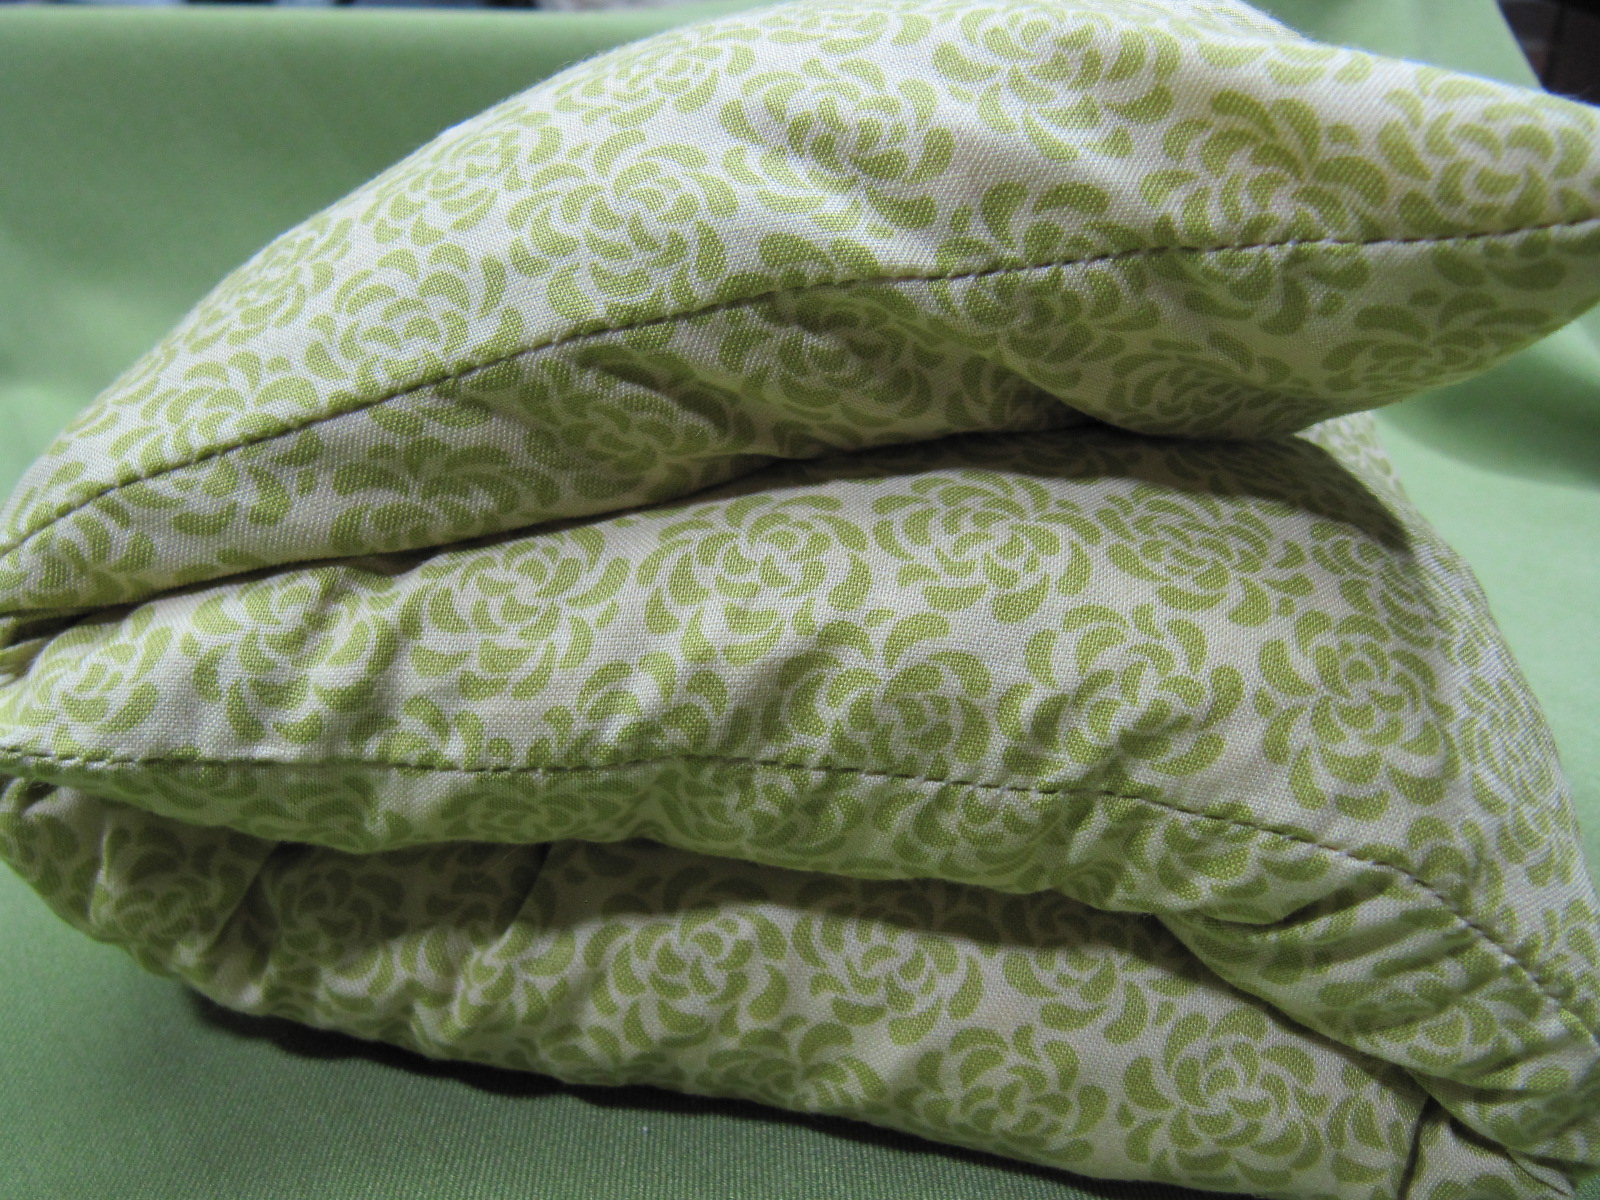 corn bags heating pads how to do it